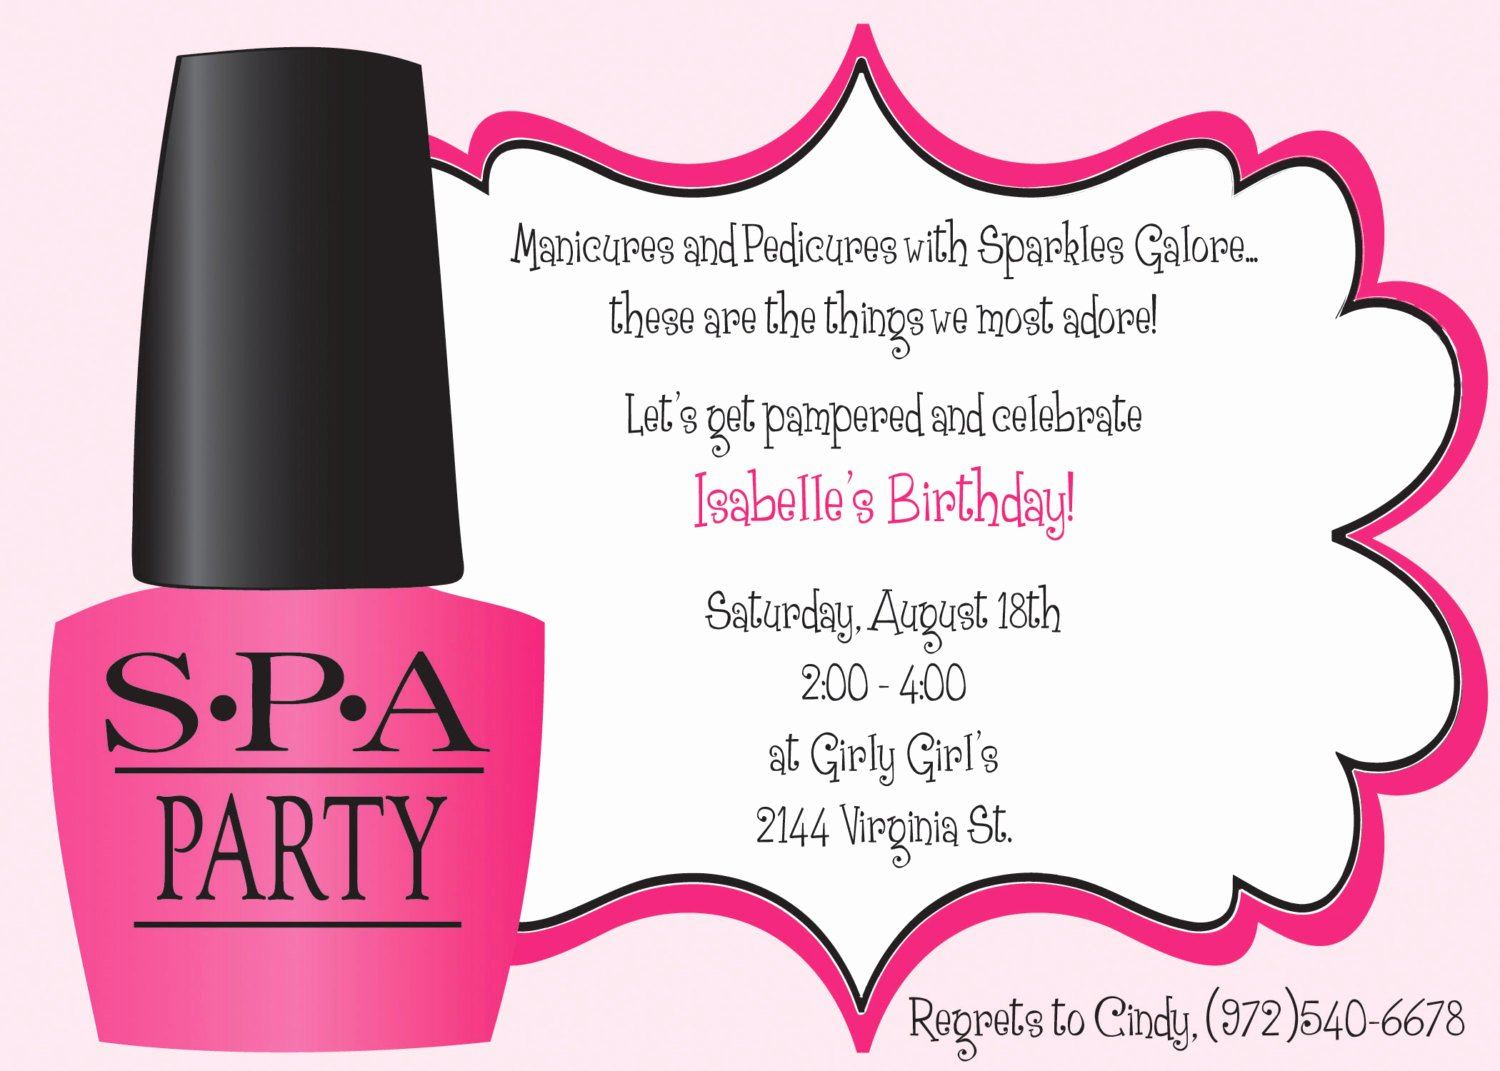 Spa Party Invitation Wording Elegant Ooh La La Spa Party Girls Birthday Invitation Includes